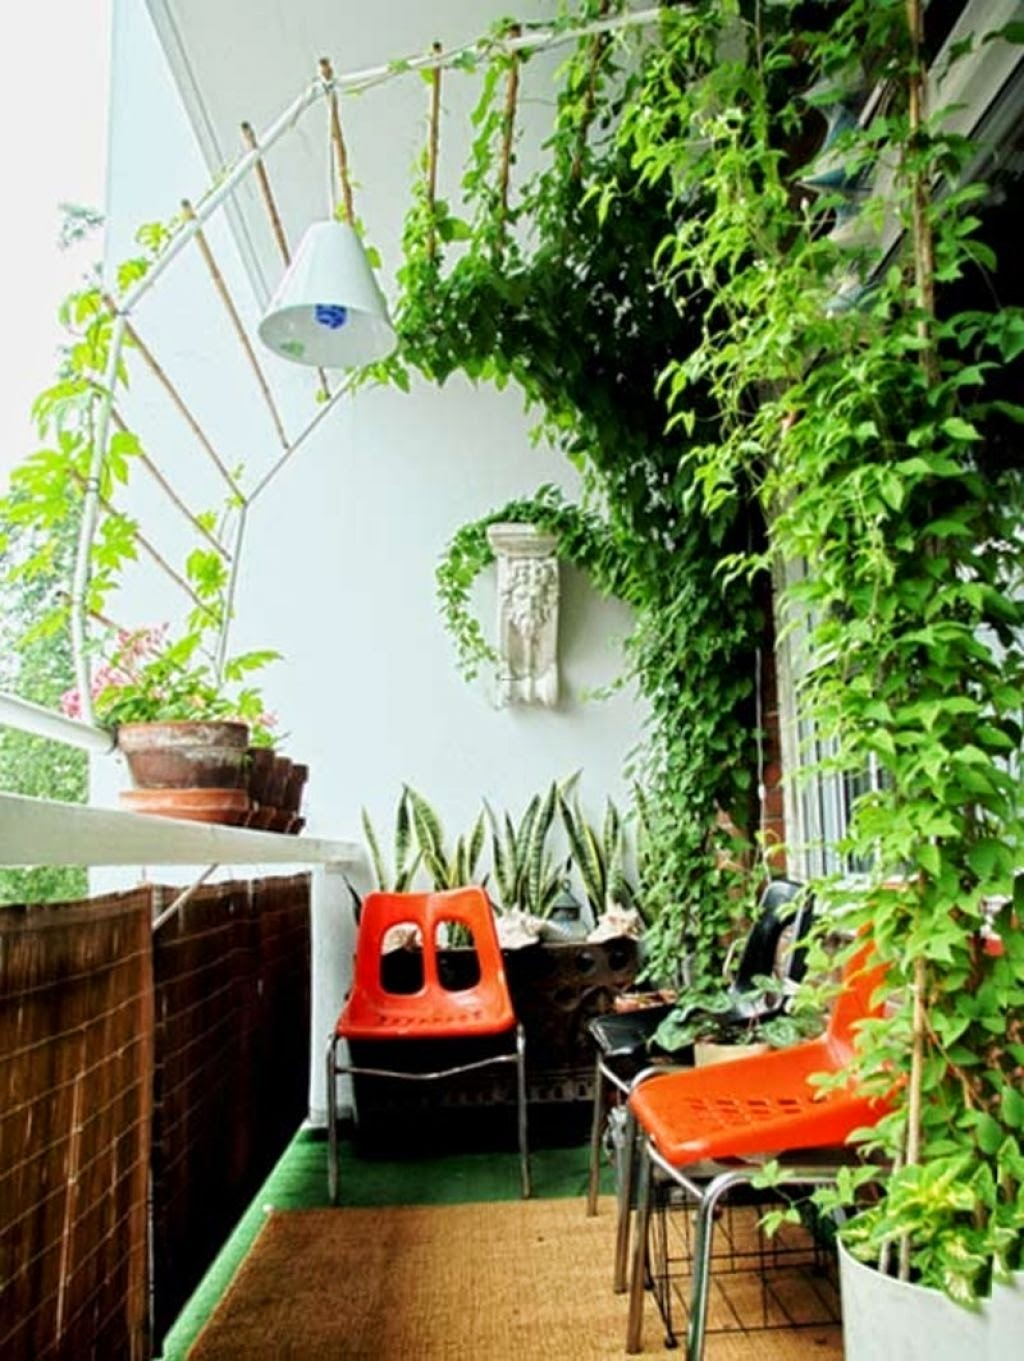 Balcony garden design ideas india eo furniture.